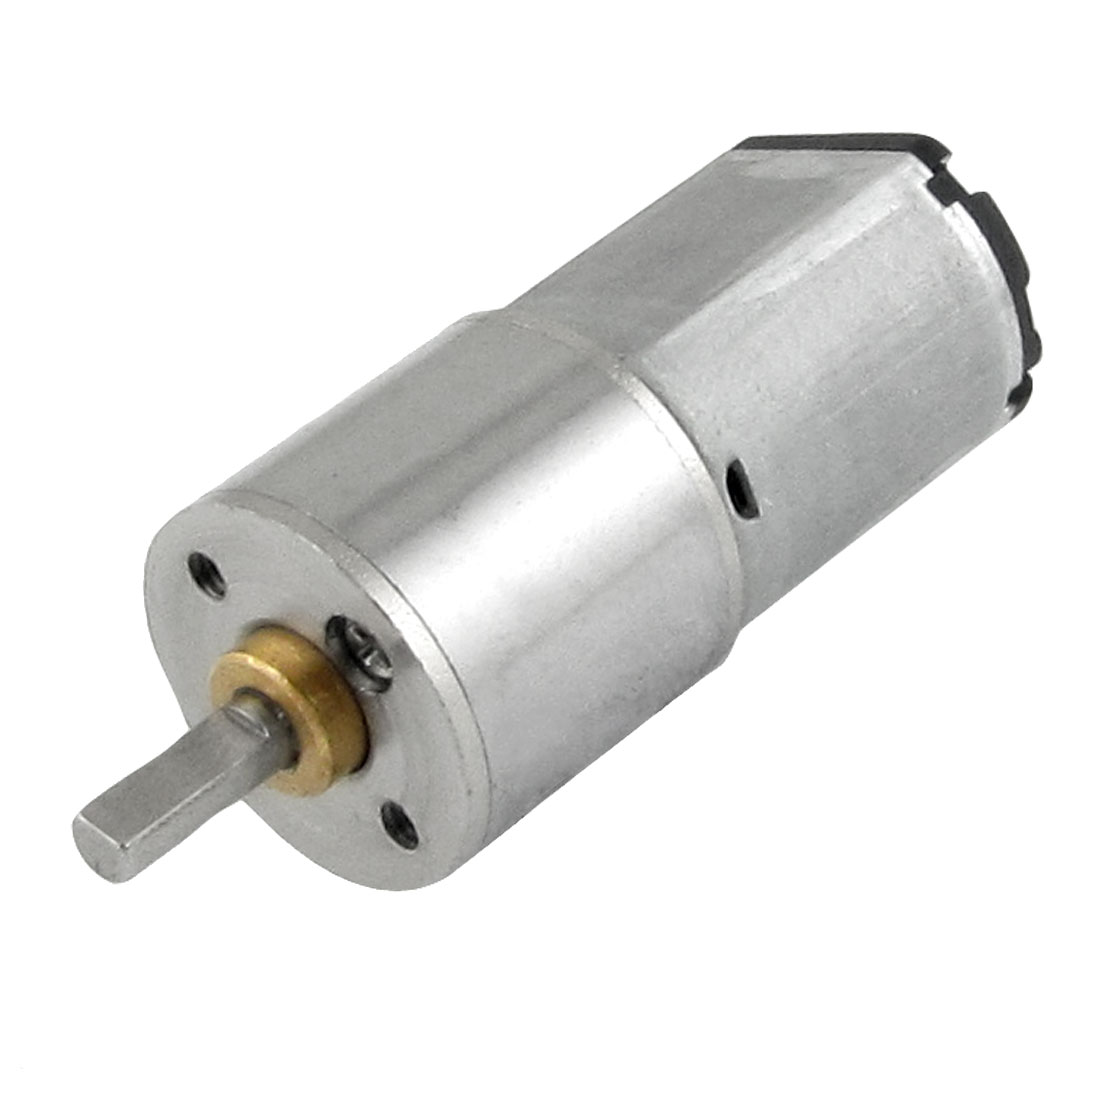 6V-100RPM-16mm-Gear-Box-Dia-Robot-Micro-DC-Geared-Motor